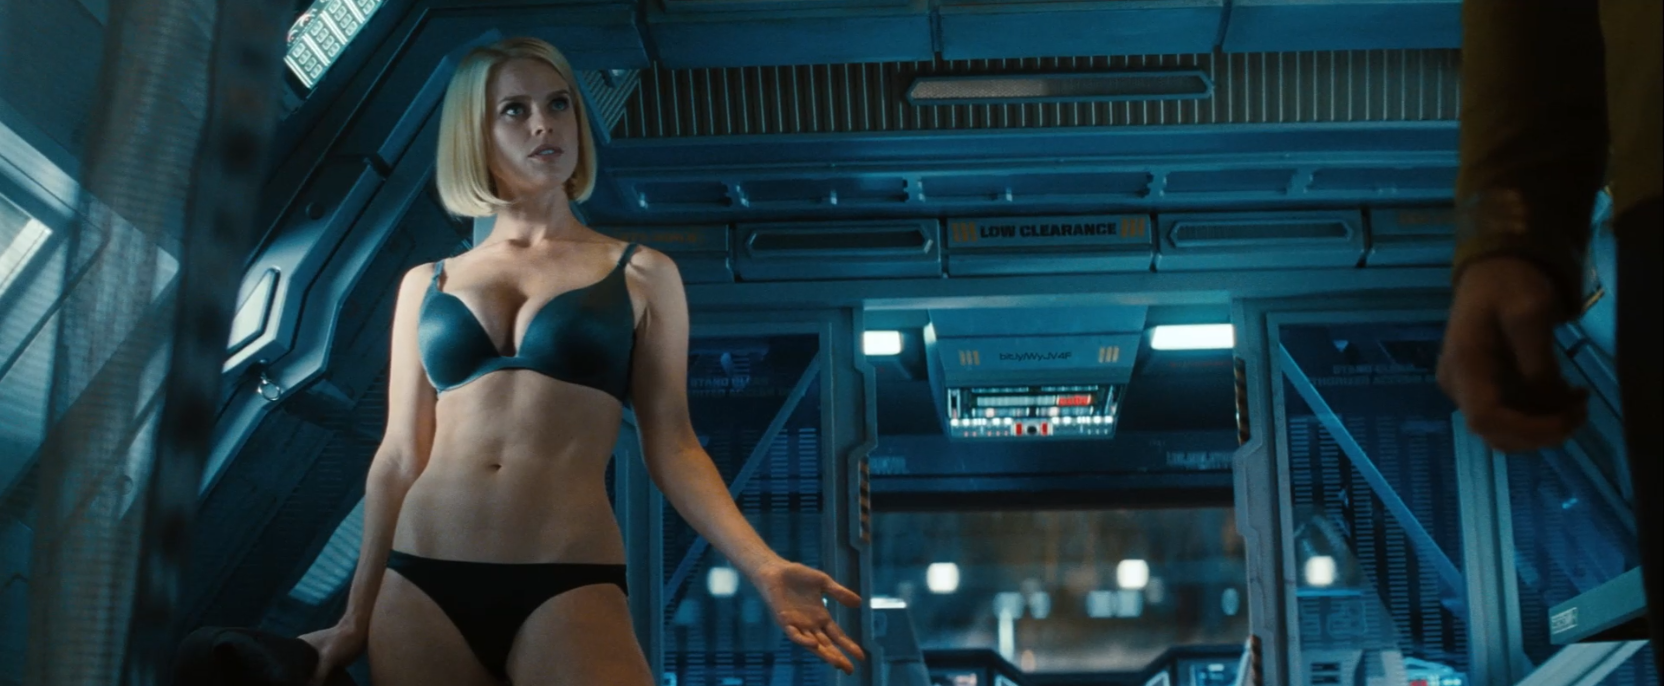 Eve Alice lingerie as Carol Marcus in Star Trek Into Darkness